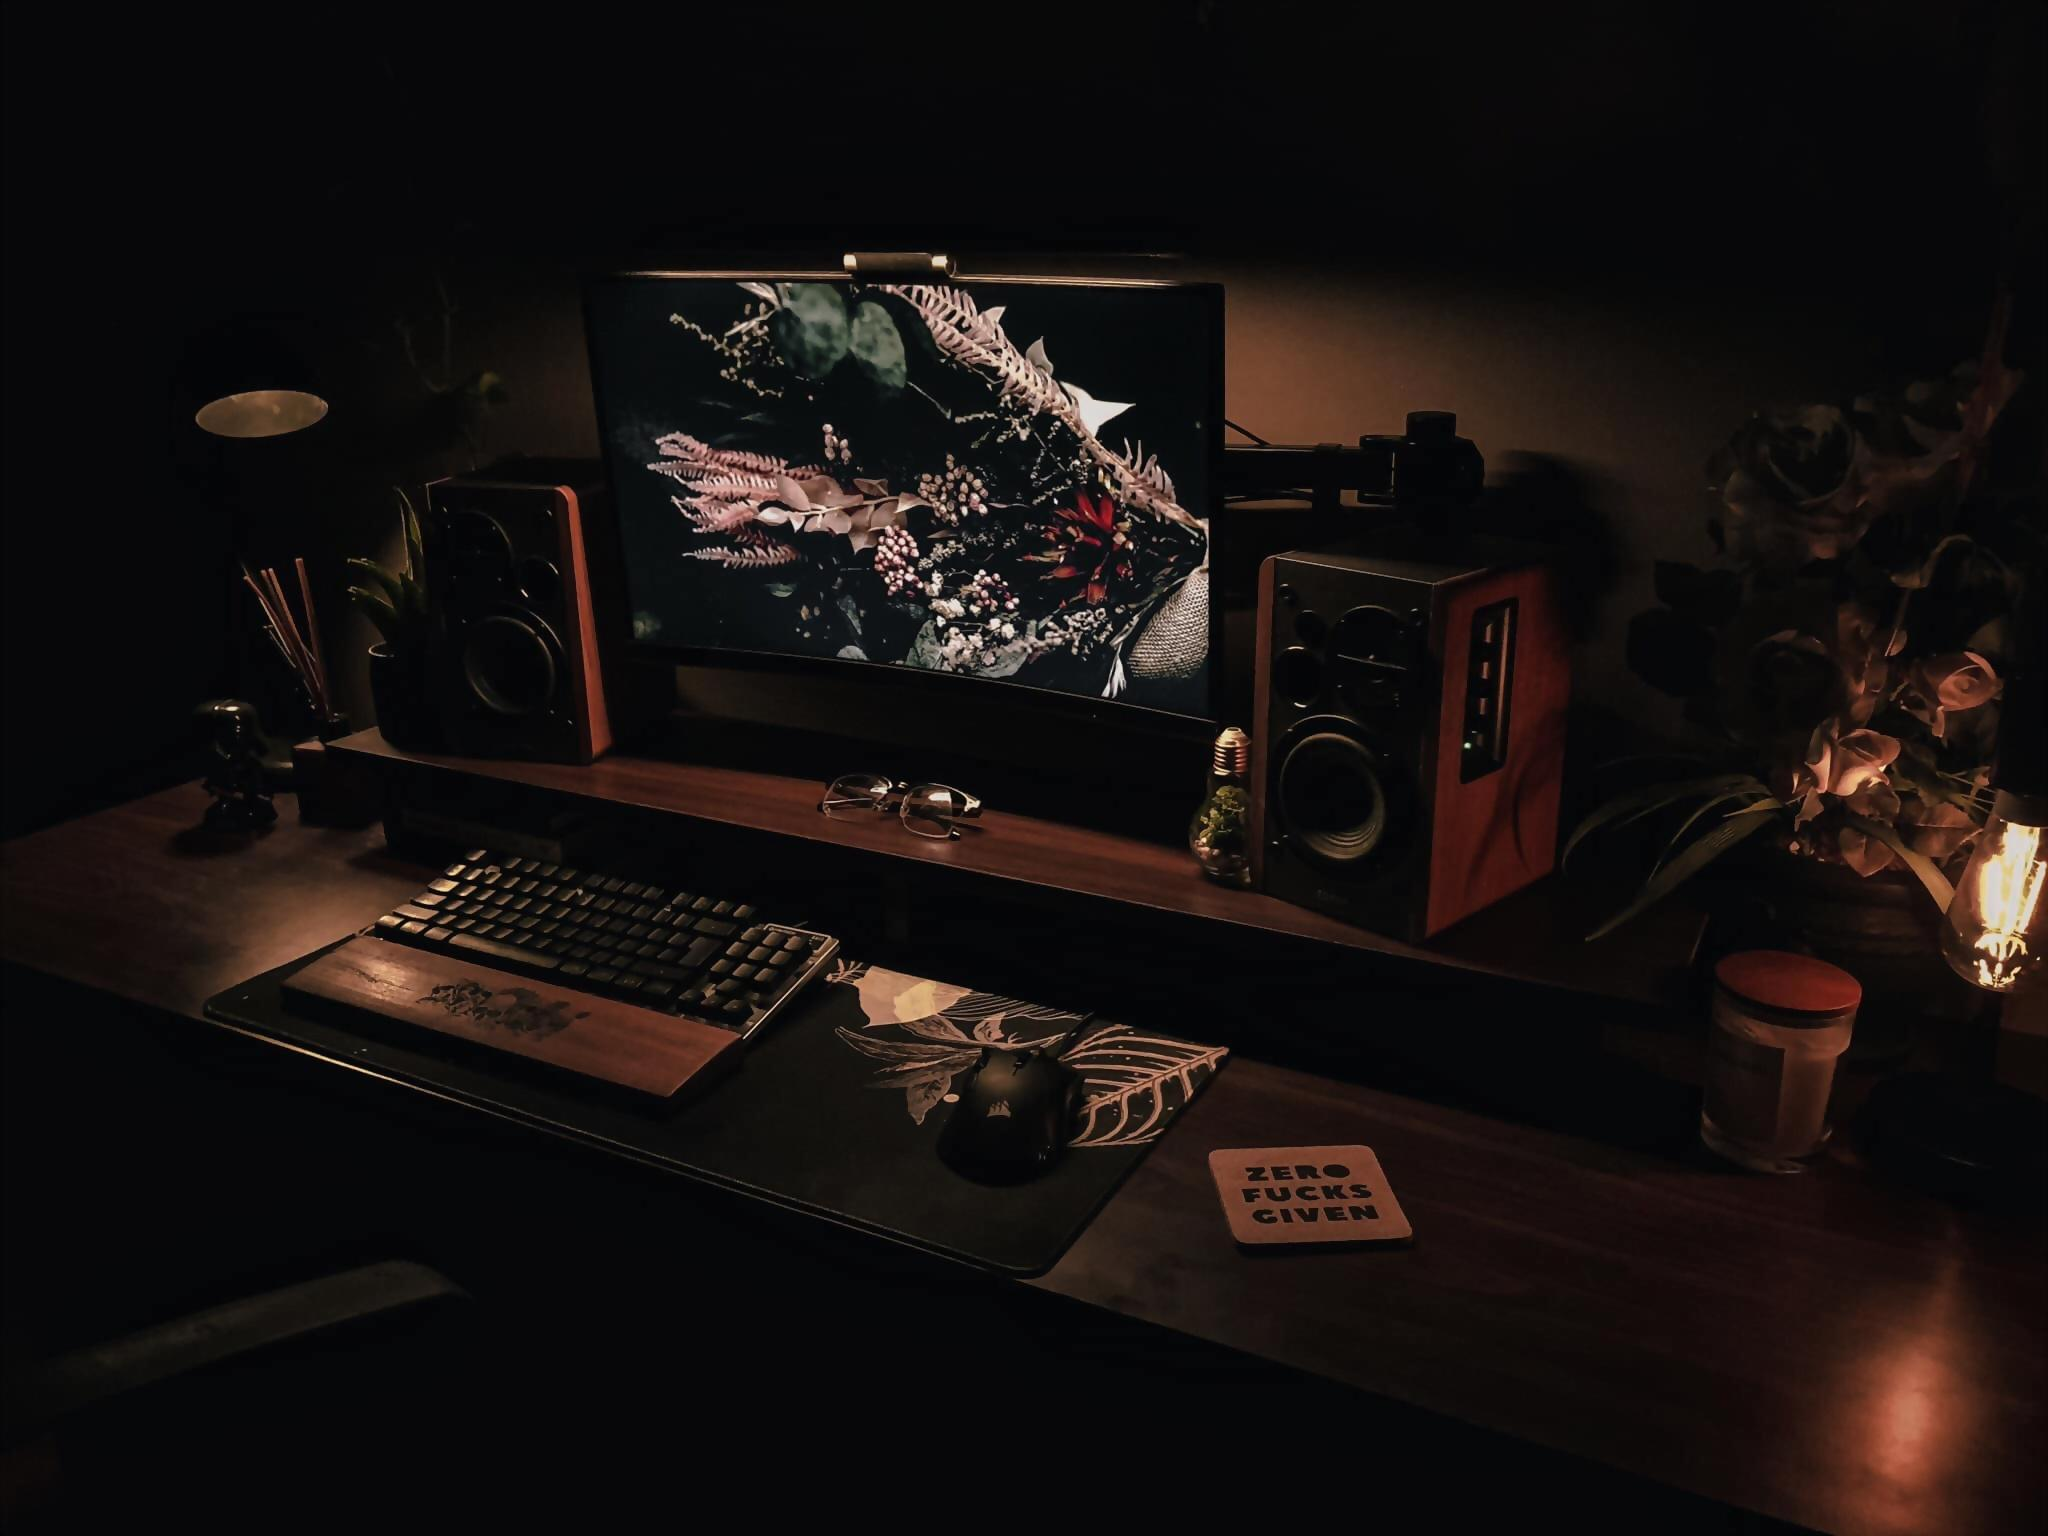 Jason has completed his setup with an ambient Baseus light bar attached to his monitor